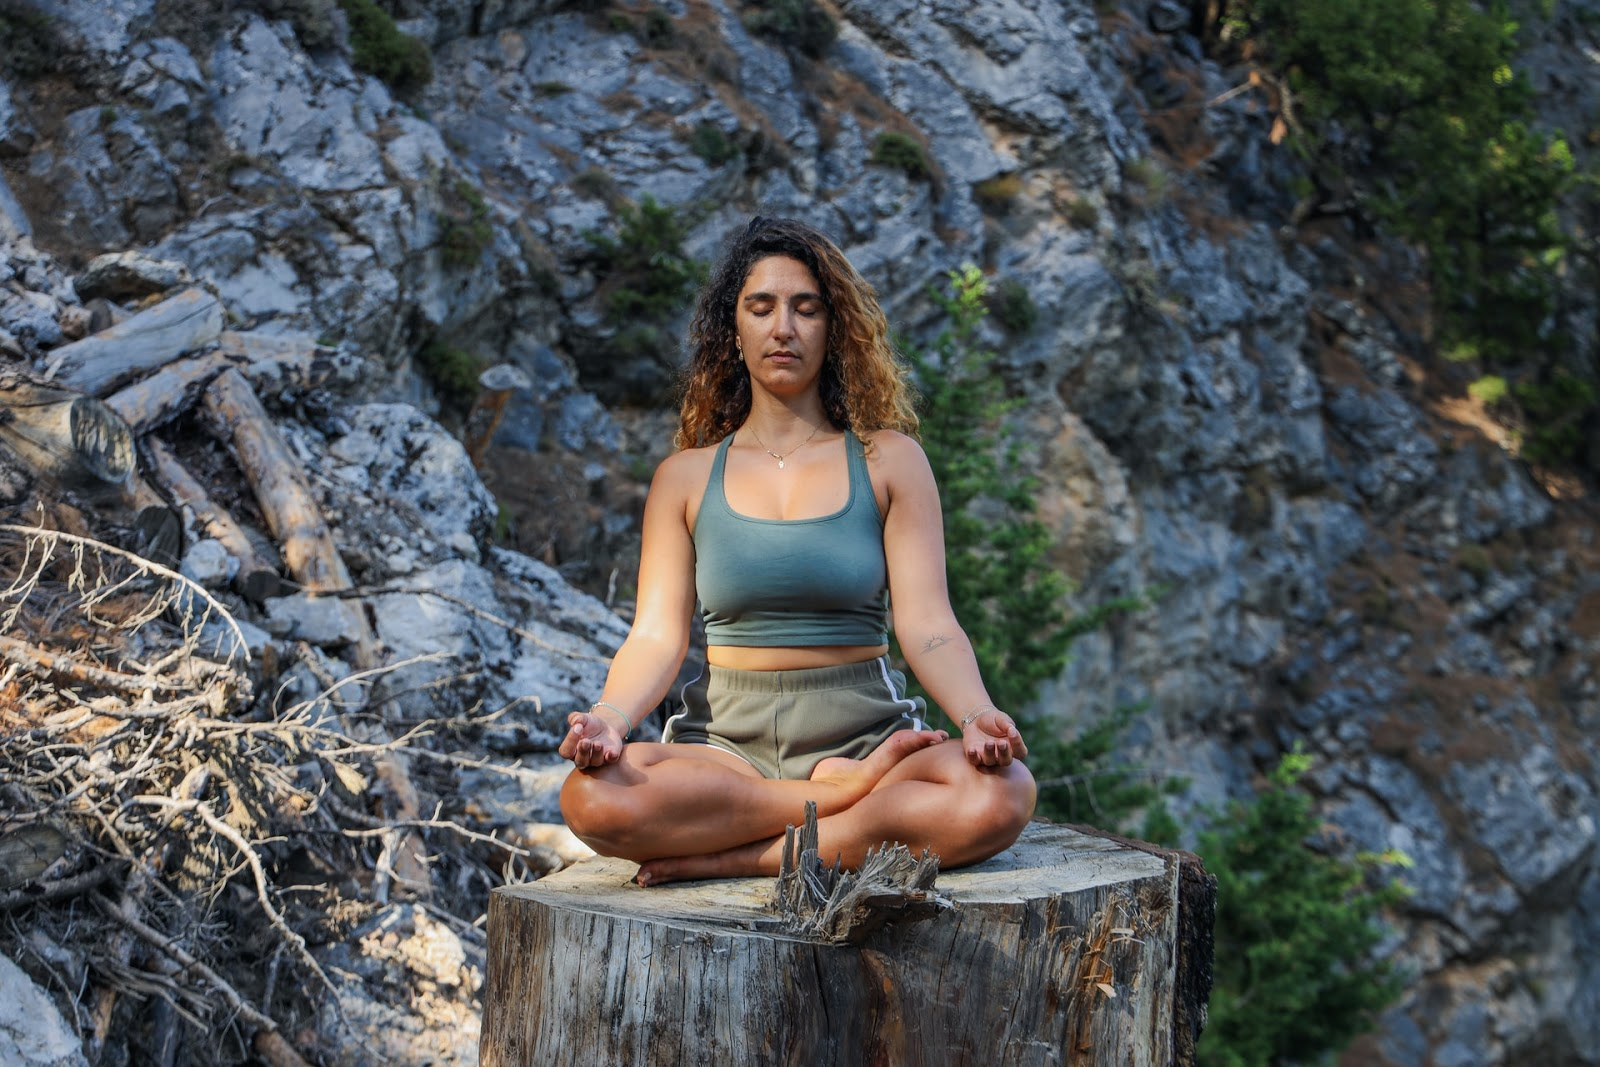 woman meditating on a tree stump in the forest